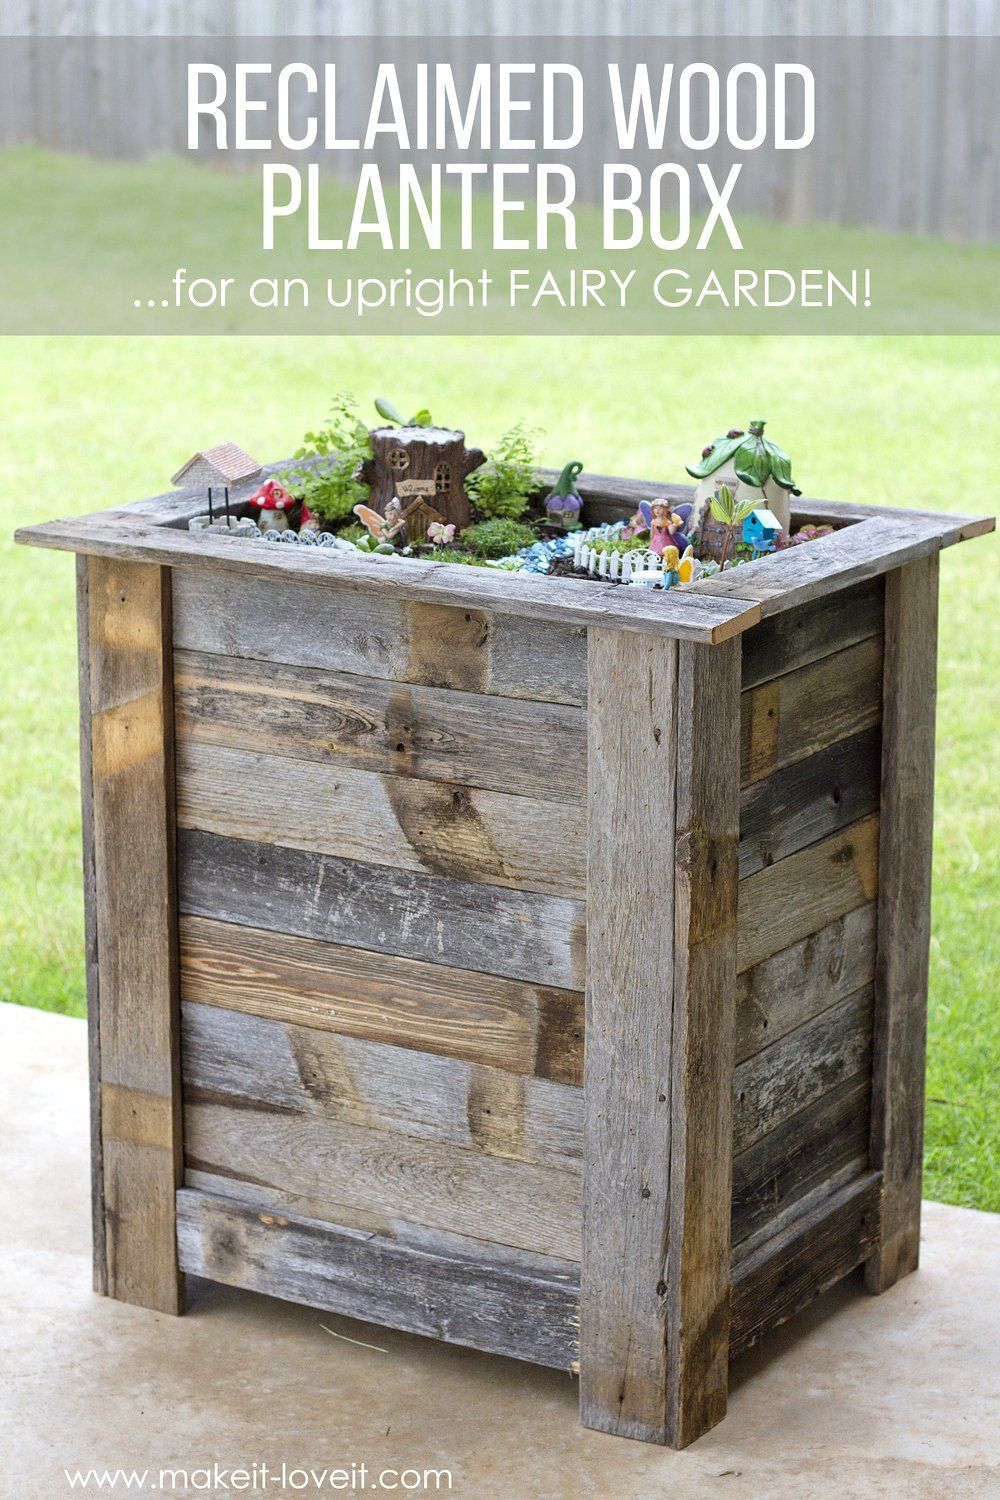 DIY Reclaimed Wood Planter Box (…for an upright Fairy Garden!) - DIY Reclaimed Wood Planter Box (…for An Upright Fairy Garden